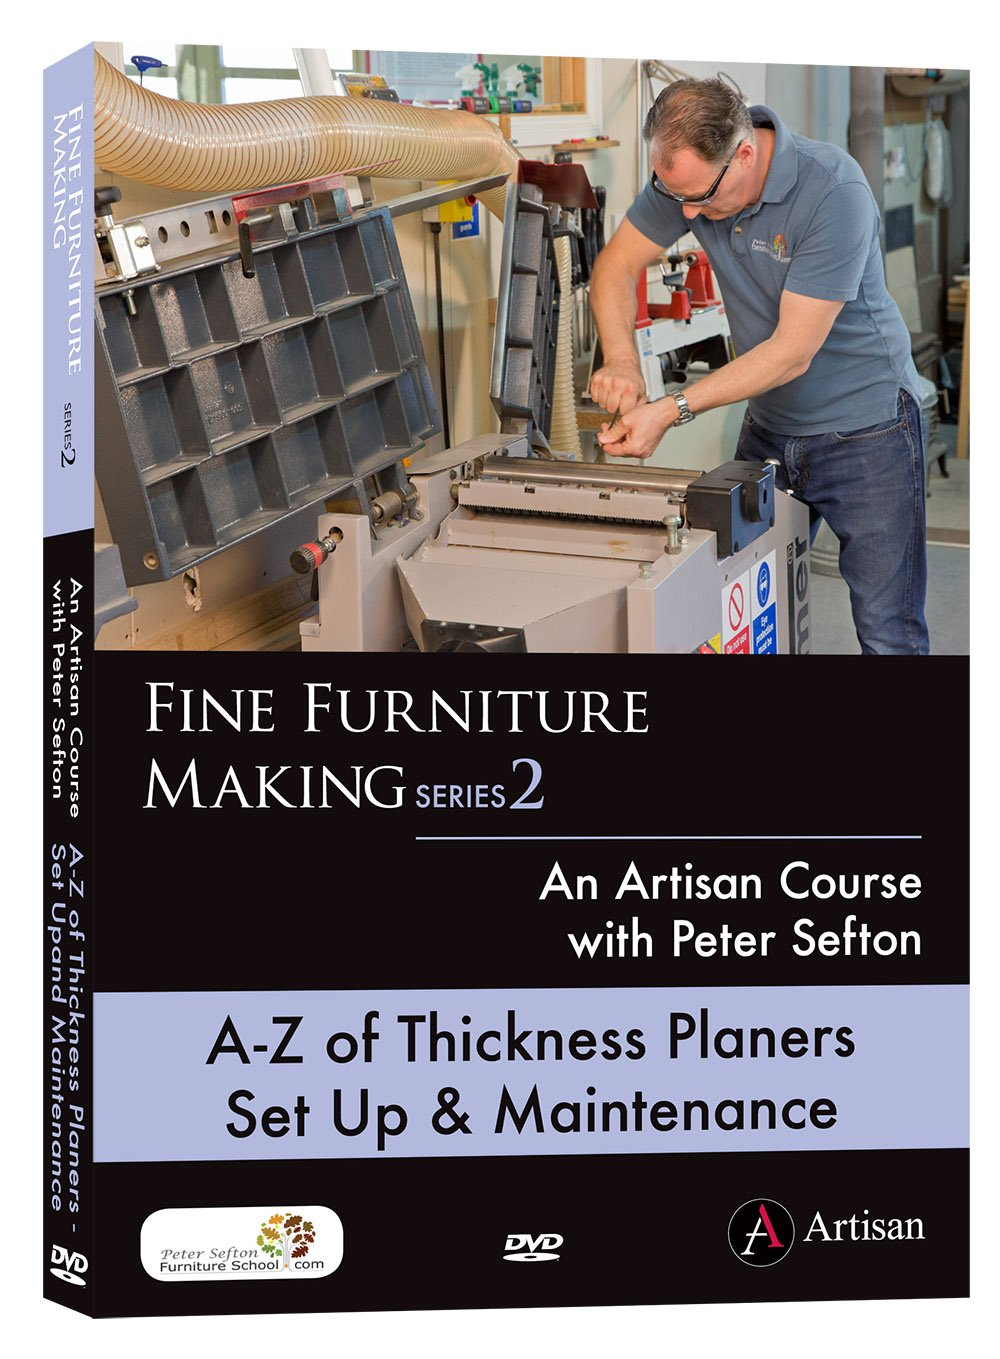 A-Z of Thickness Planer Set Up & Maintenance - Peter Sefton - (DVD)